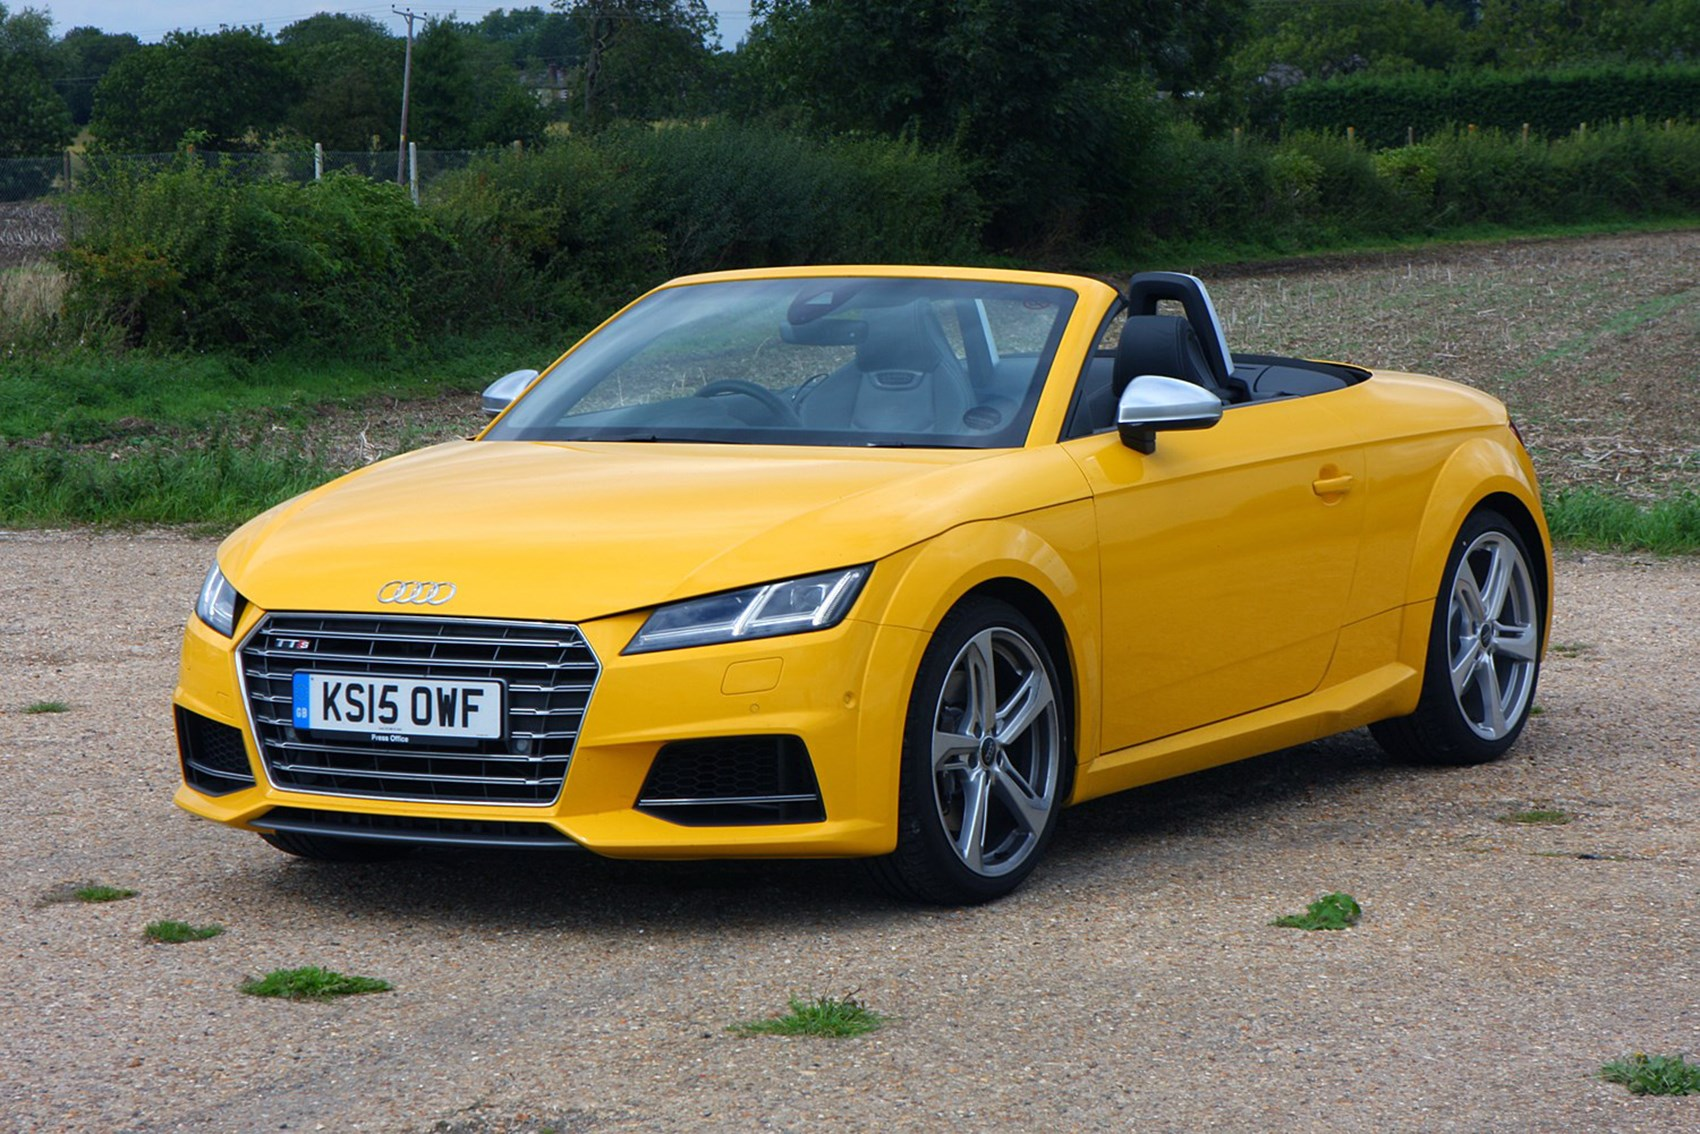 Audi TT Roadster   The Best Automatic Convertible Cars